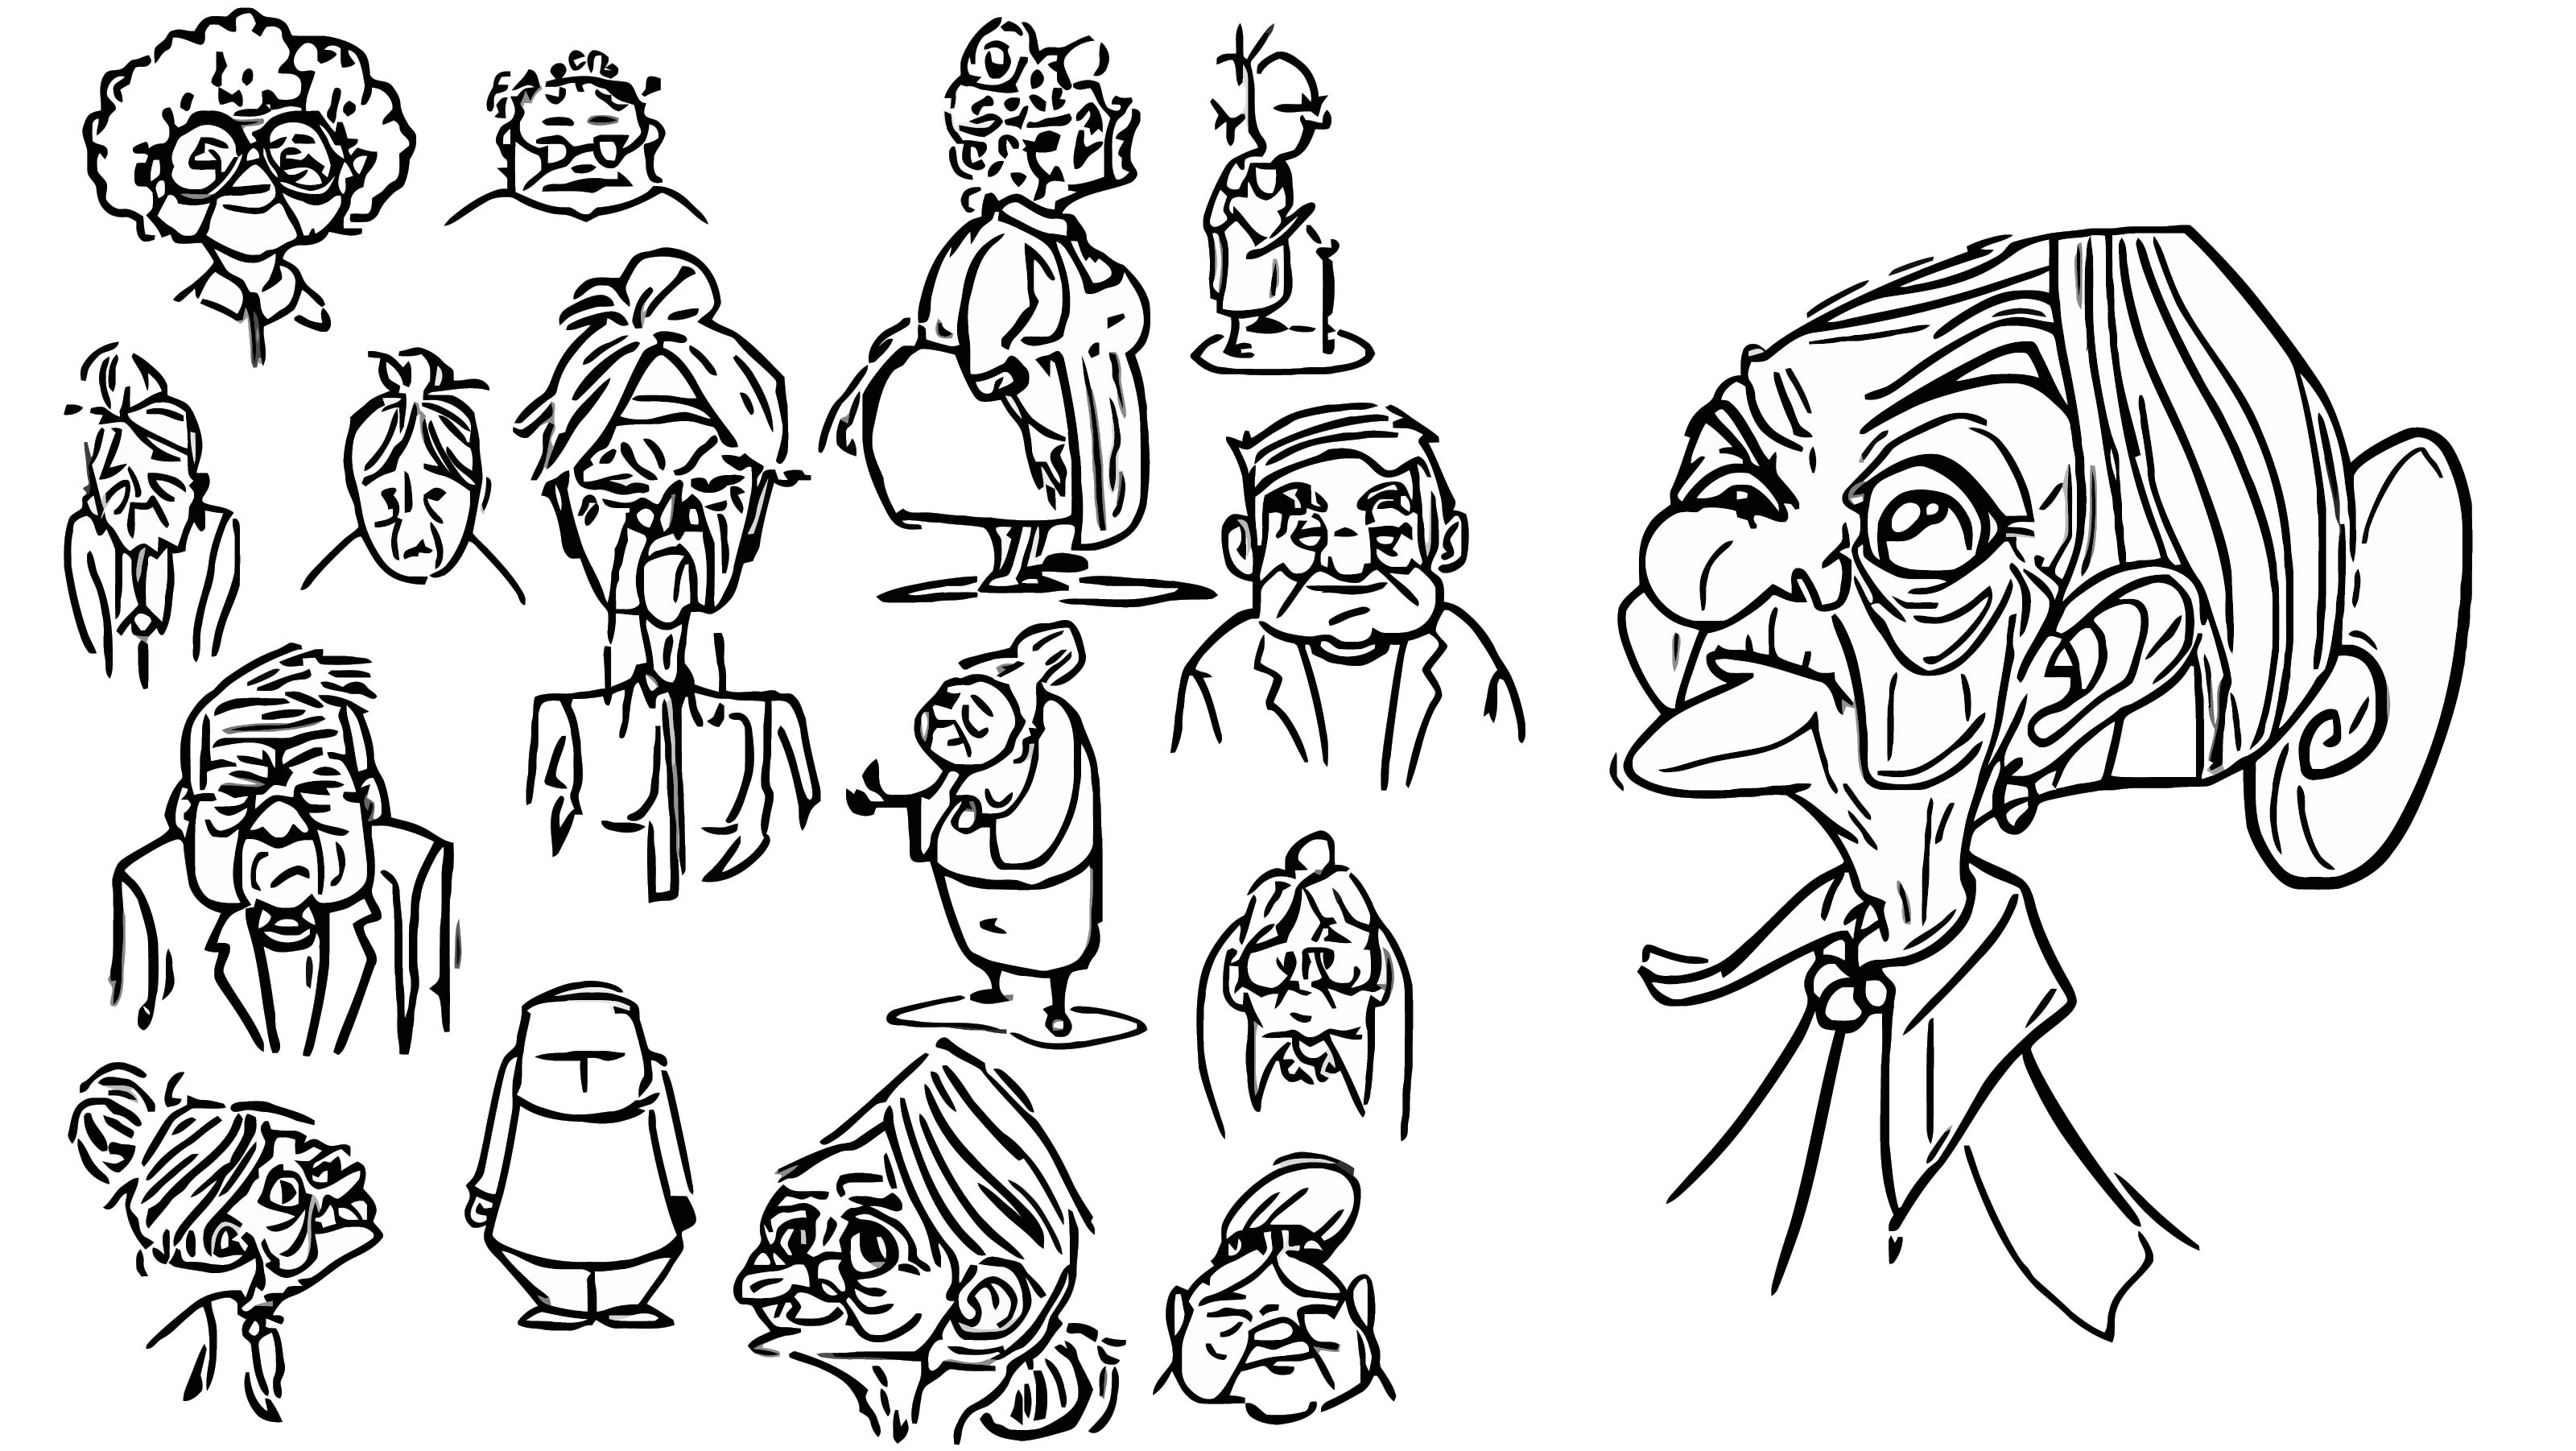 Granny Character Designs Cartoonize Coloring Page